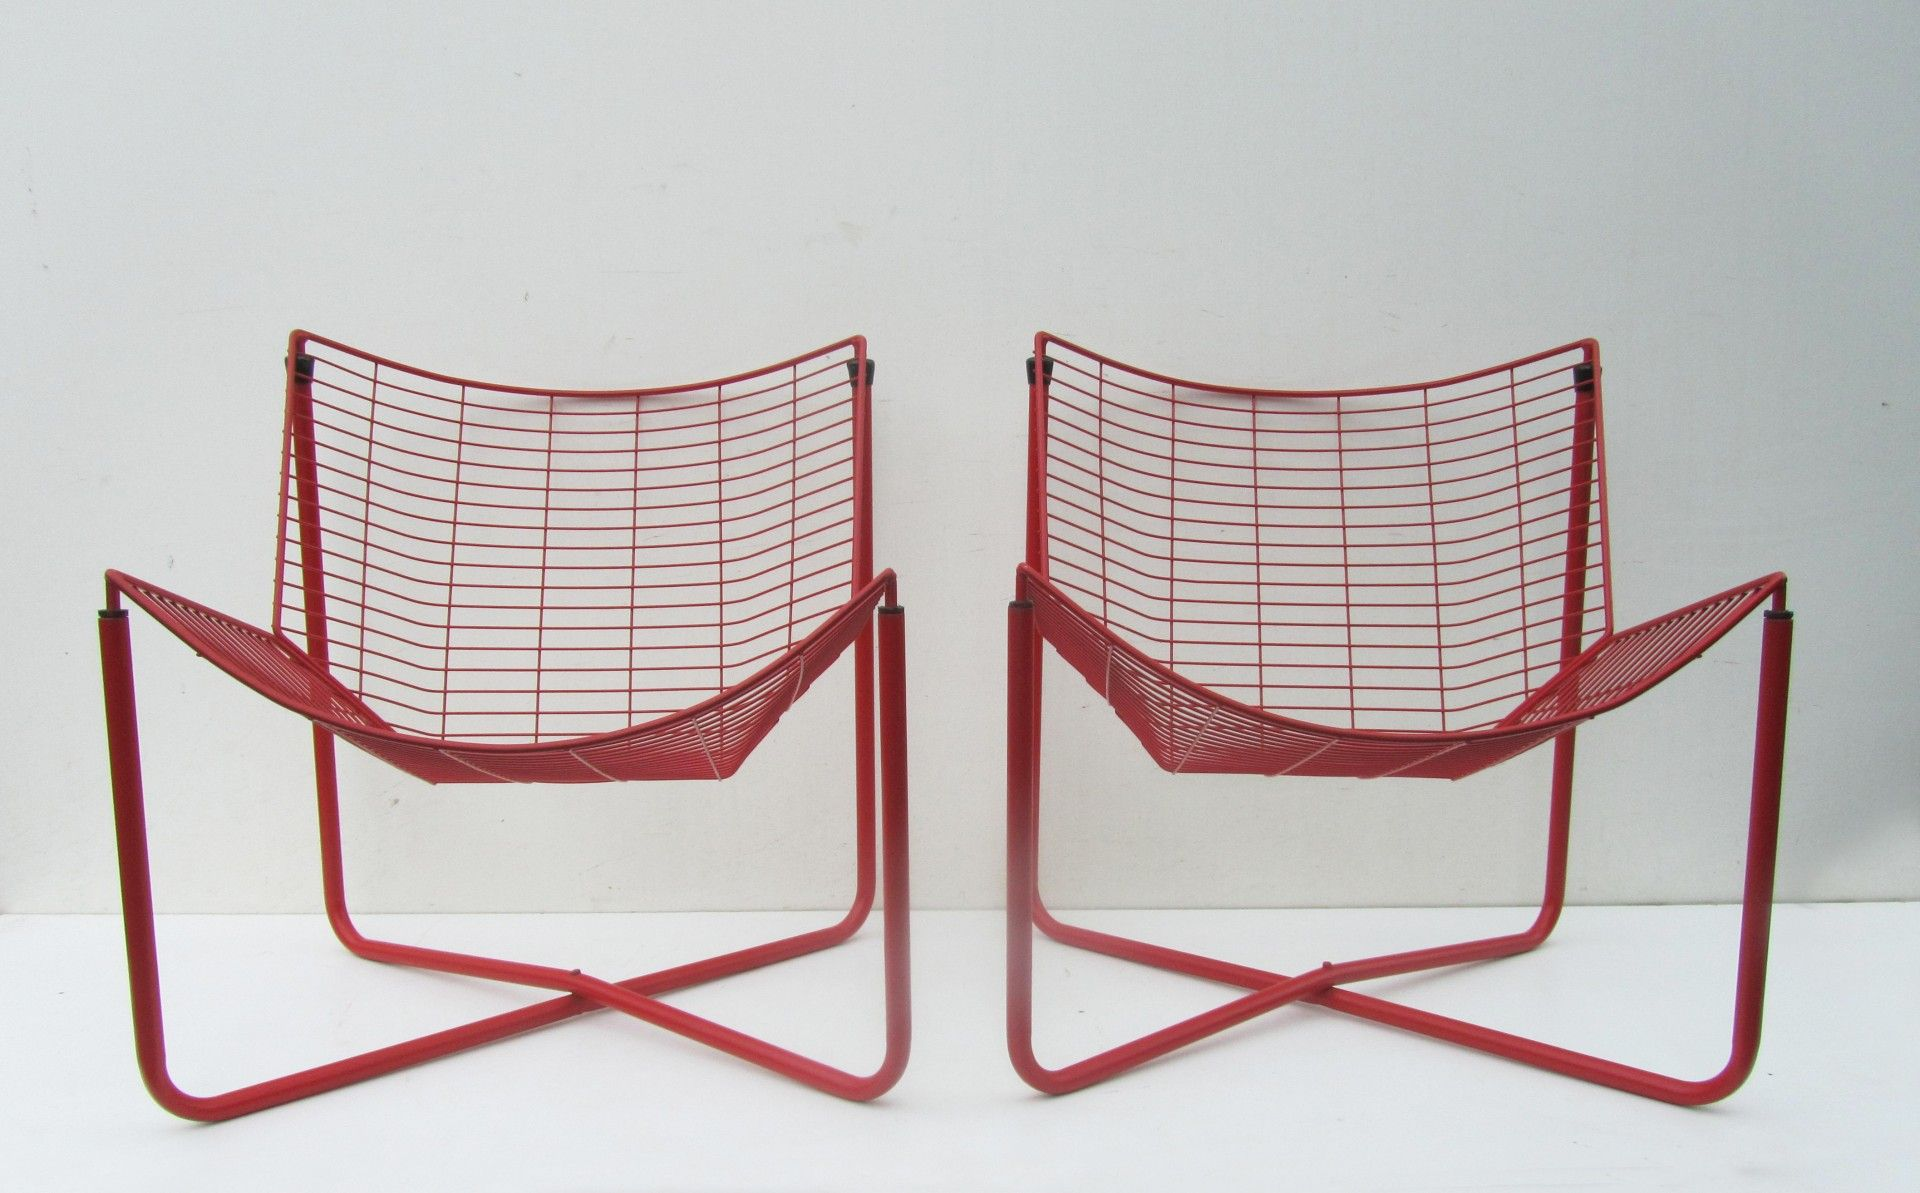 Red Metal Wire Jarpen Chairs By Niels Gammelgaard For Ikea, 1983, Set Of 2